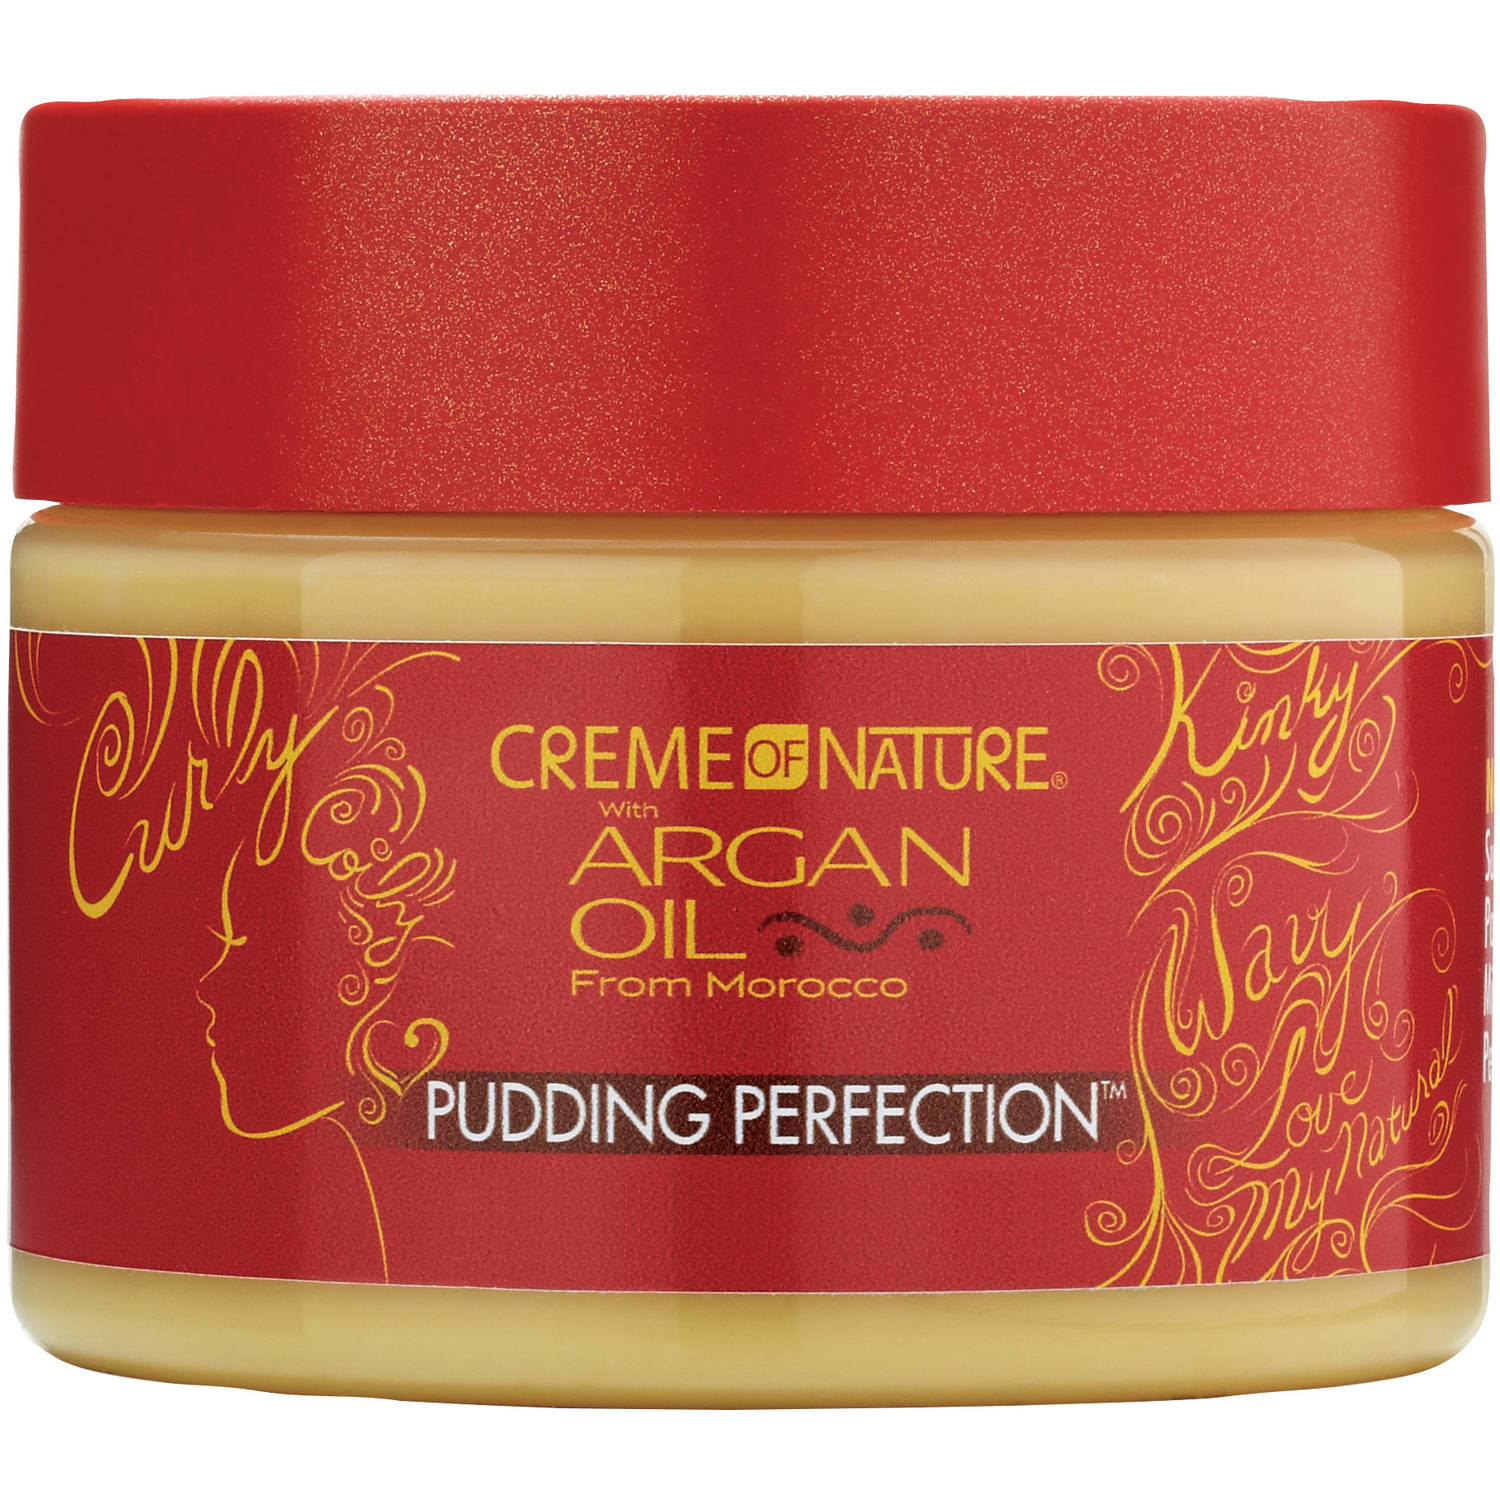 Creme of Nature Pudding Perfection Curl Enhancing Creme, 11.5 oz